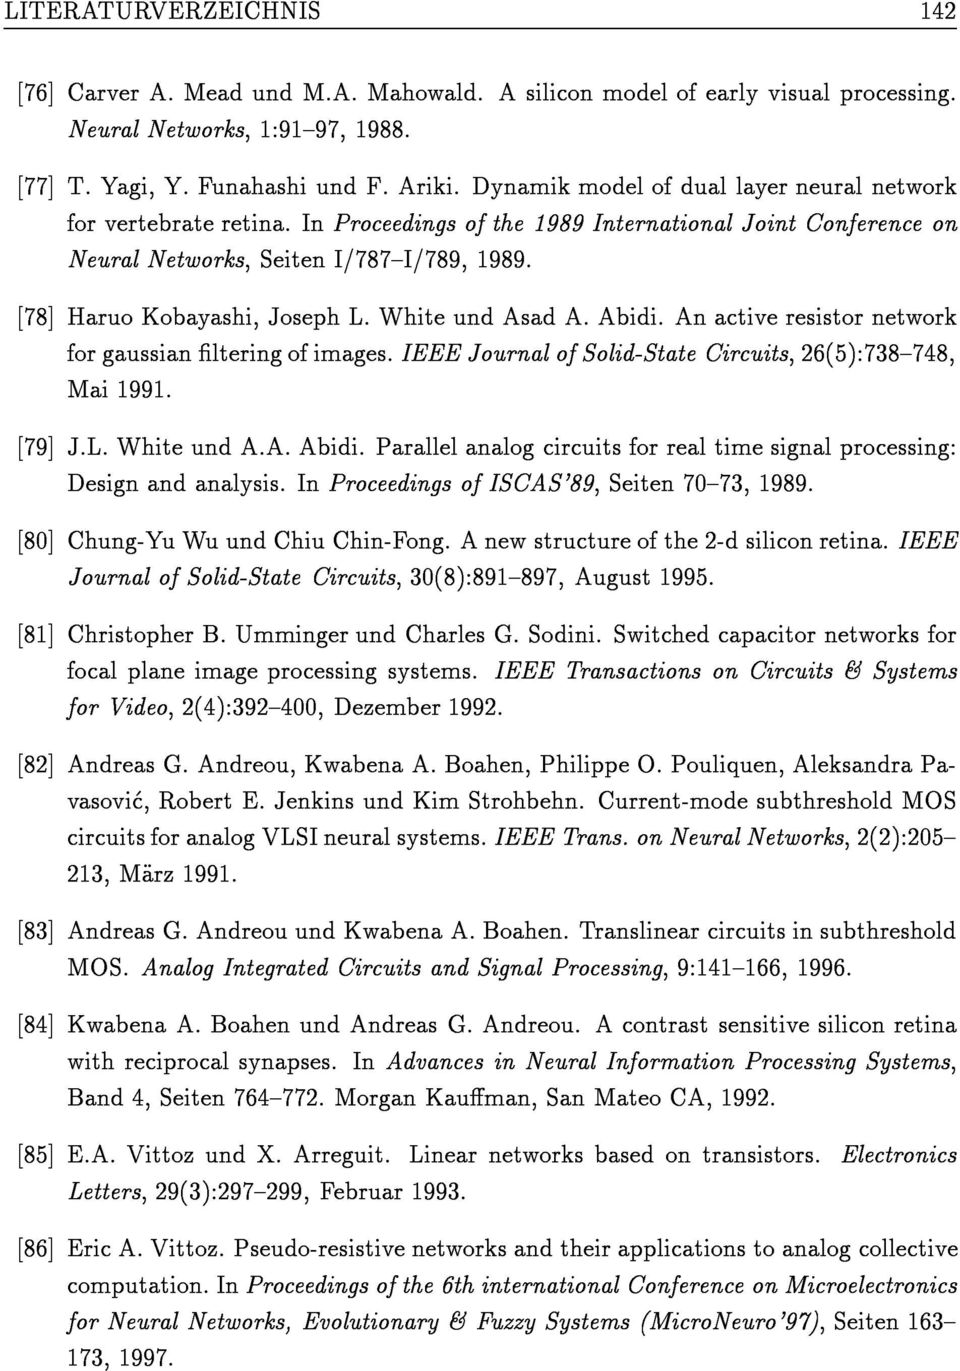 ë78ë Haruo Kobayashi, Joseph L. White und Asad A. Abidi. An active resistor network for gaussian æltering of images. IEEE Journal of Solid-State Circuits, 26è5è:738í748, Mai 1991. ë79ë J.L. White und A.A. Abidi. Parallel analog circuits for real time signal processing: Design and analysis.